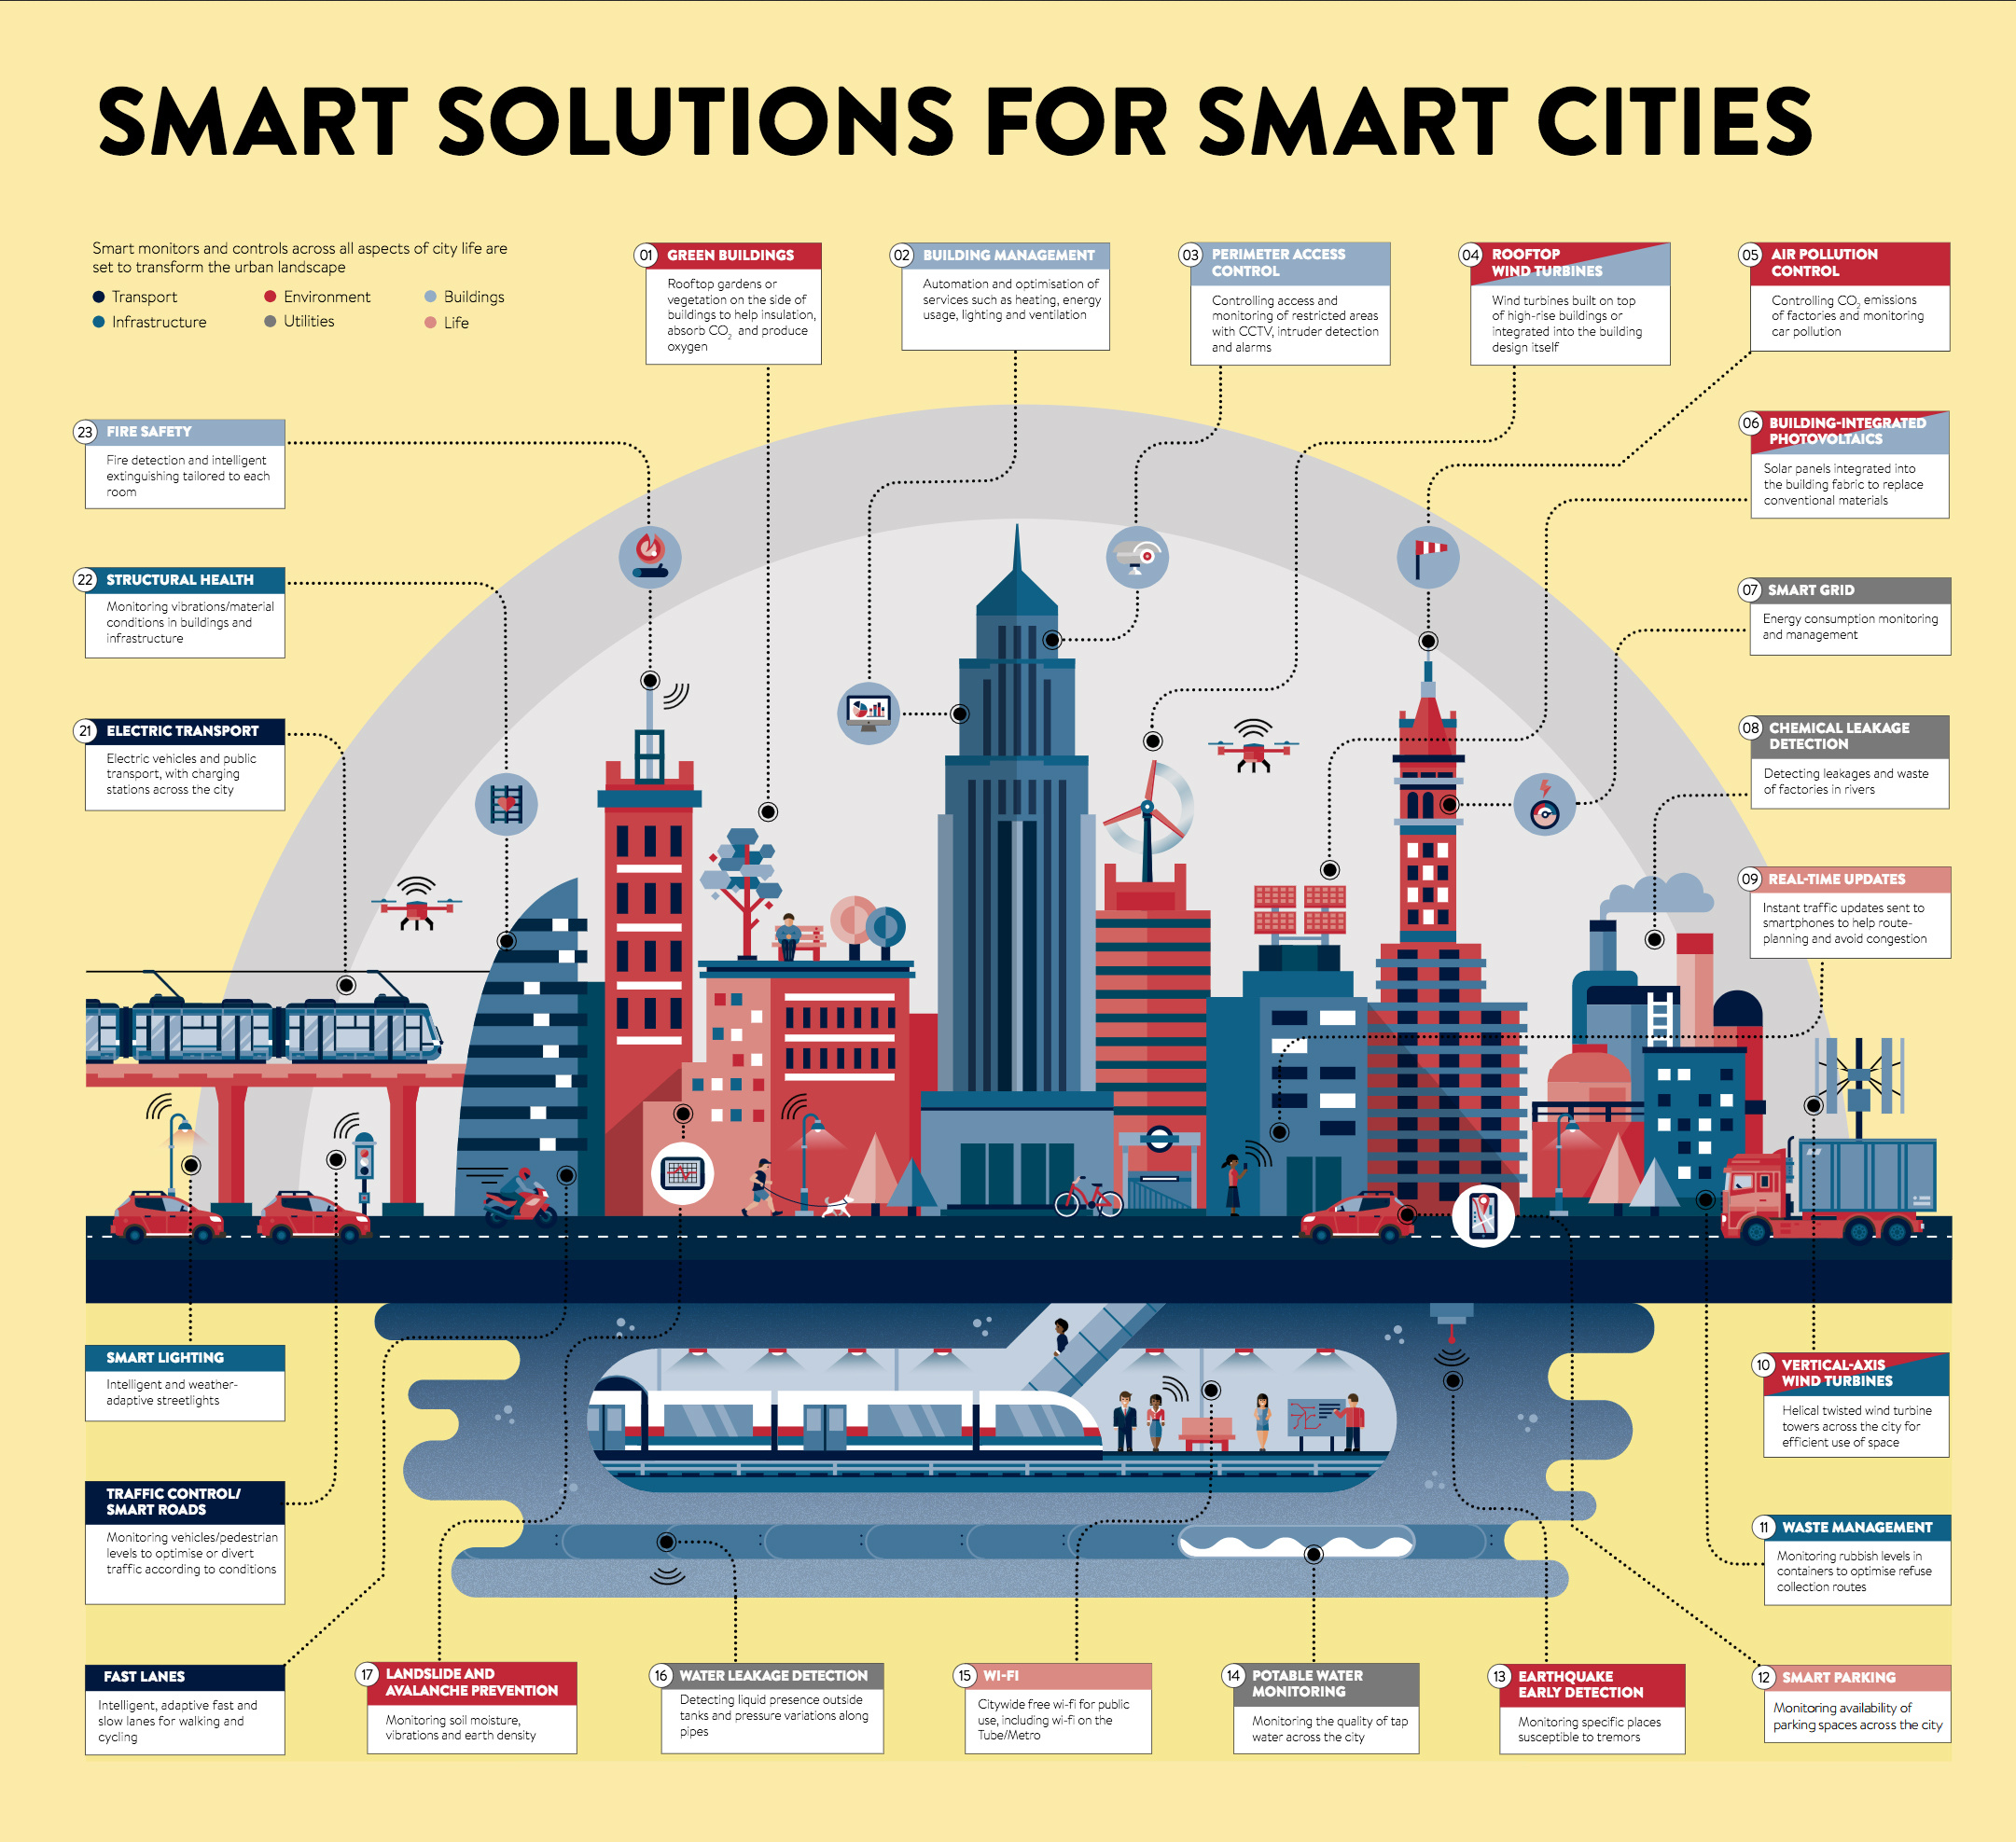 How to Build Smarter Cities